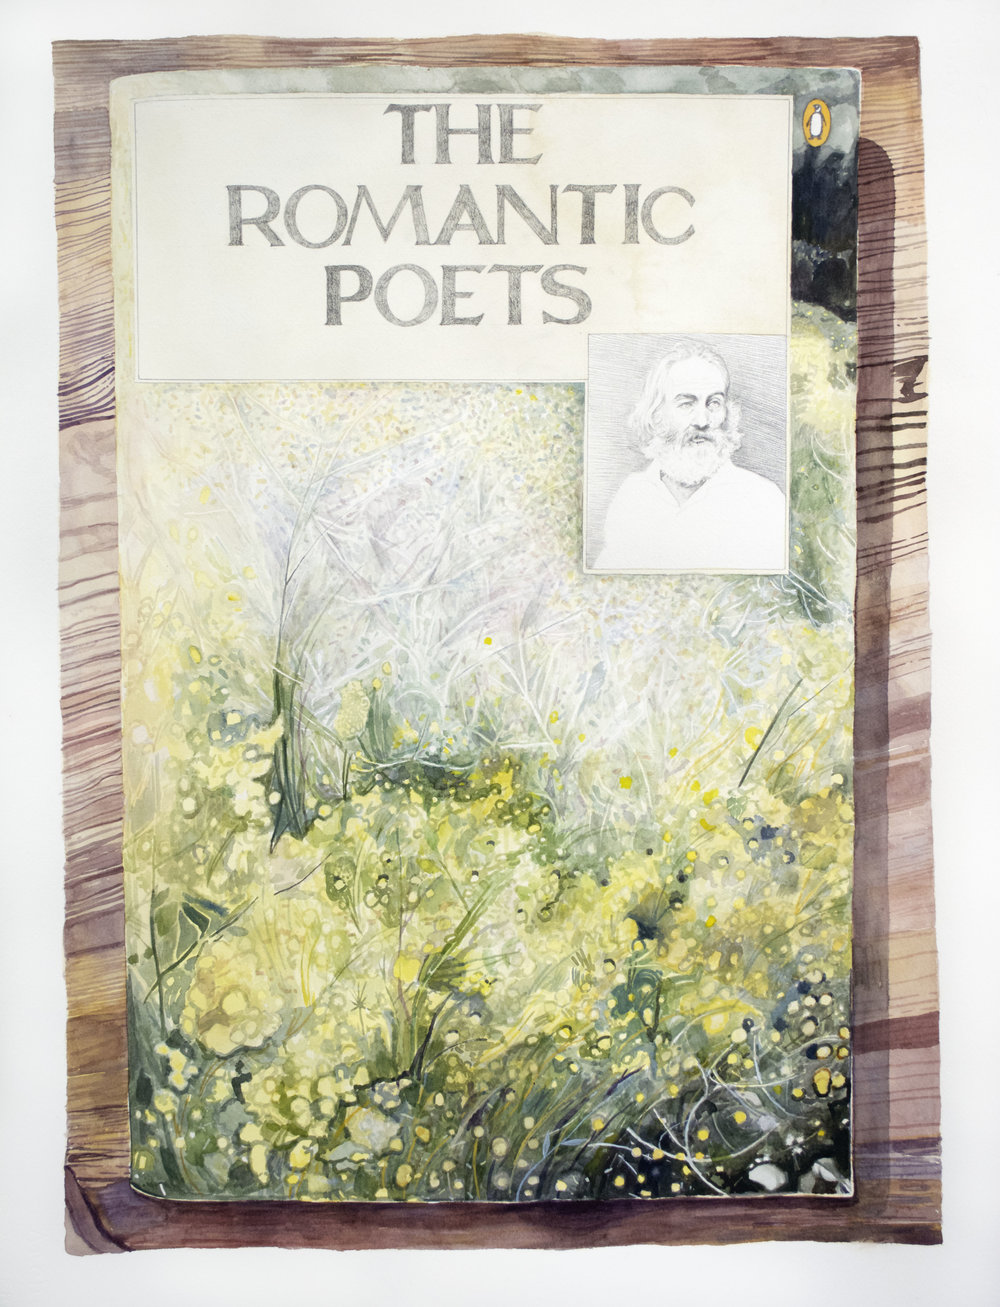 Untitled (The Romantic Poets)